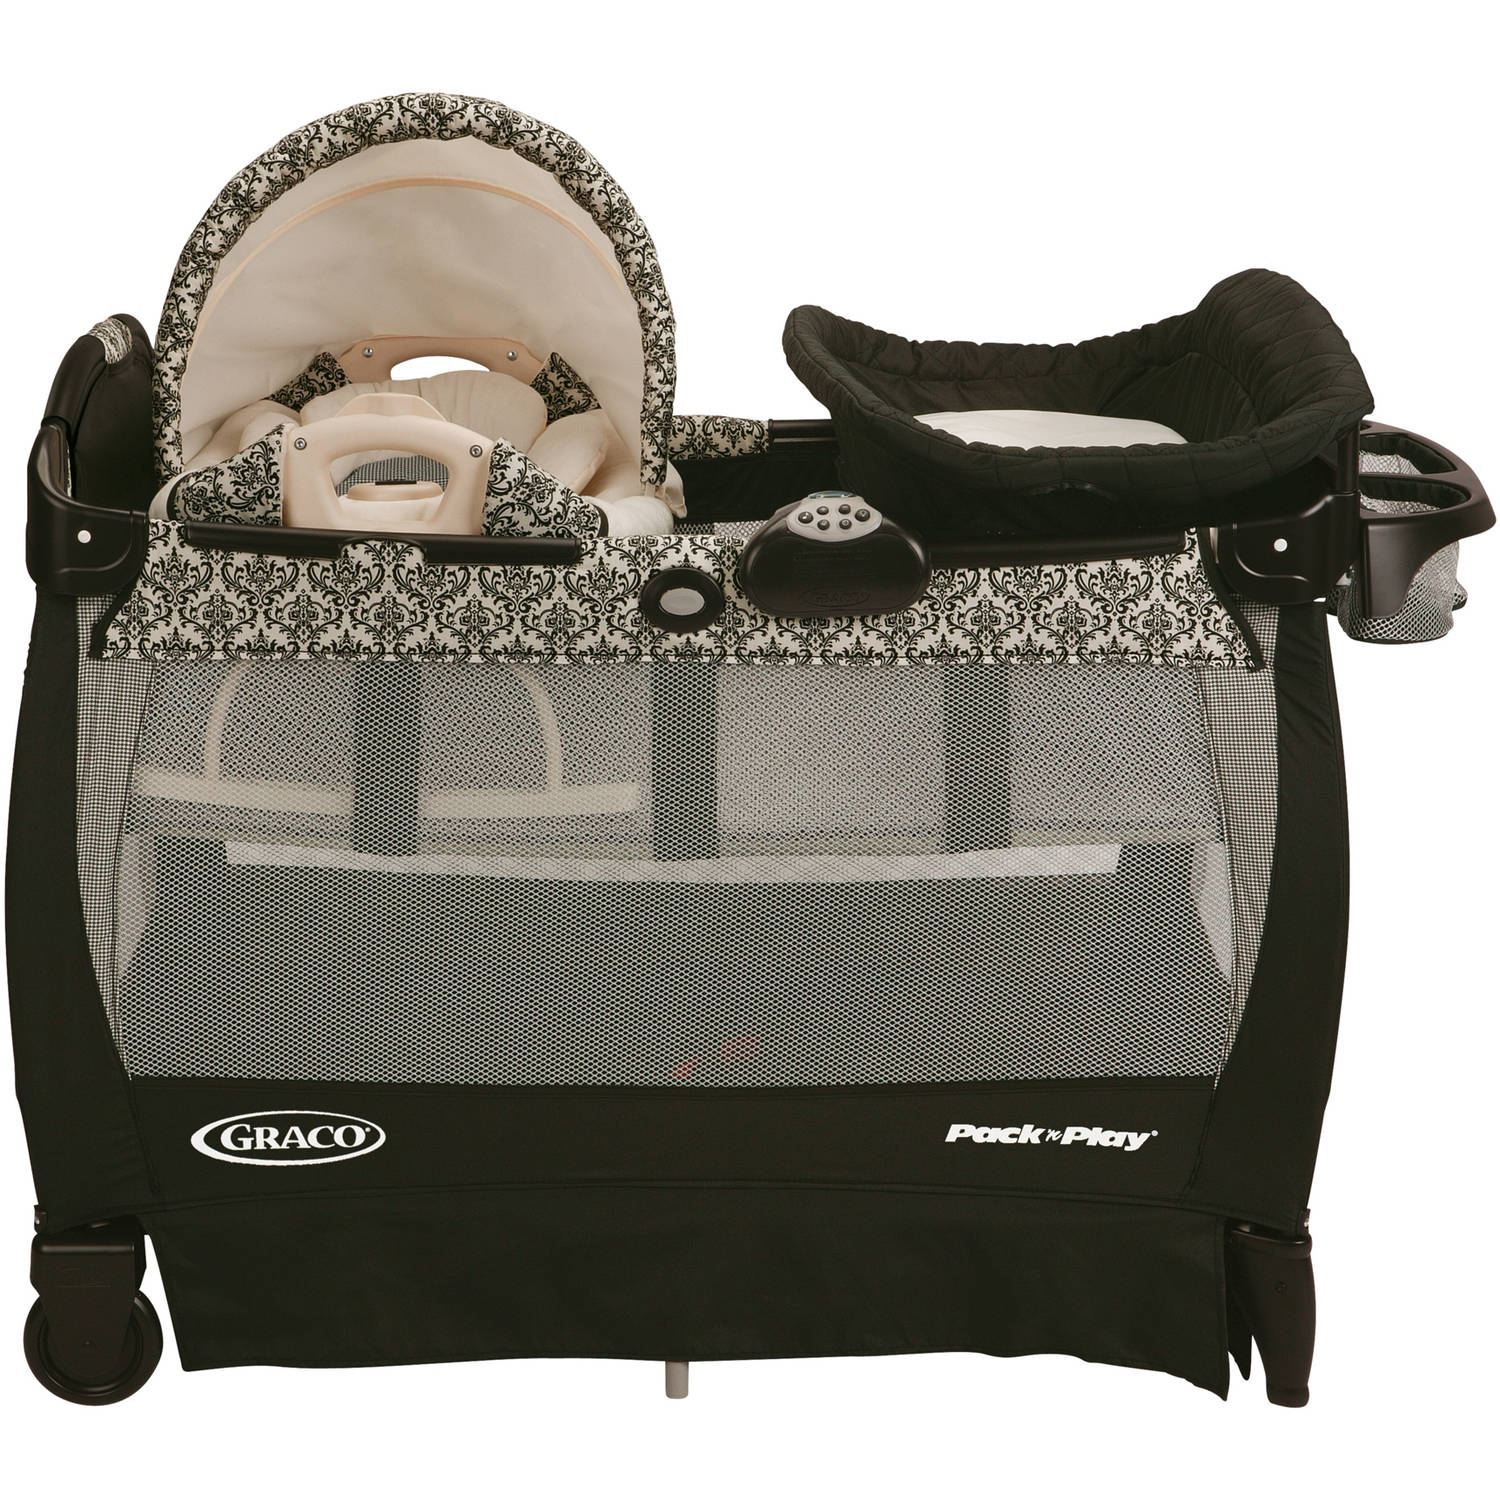 Graco Pack 'n Play Playard with Cuddle Cove - Rittenhouse - Walmart.com